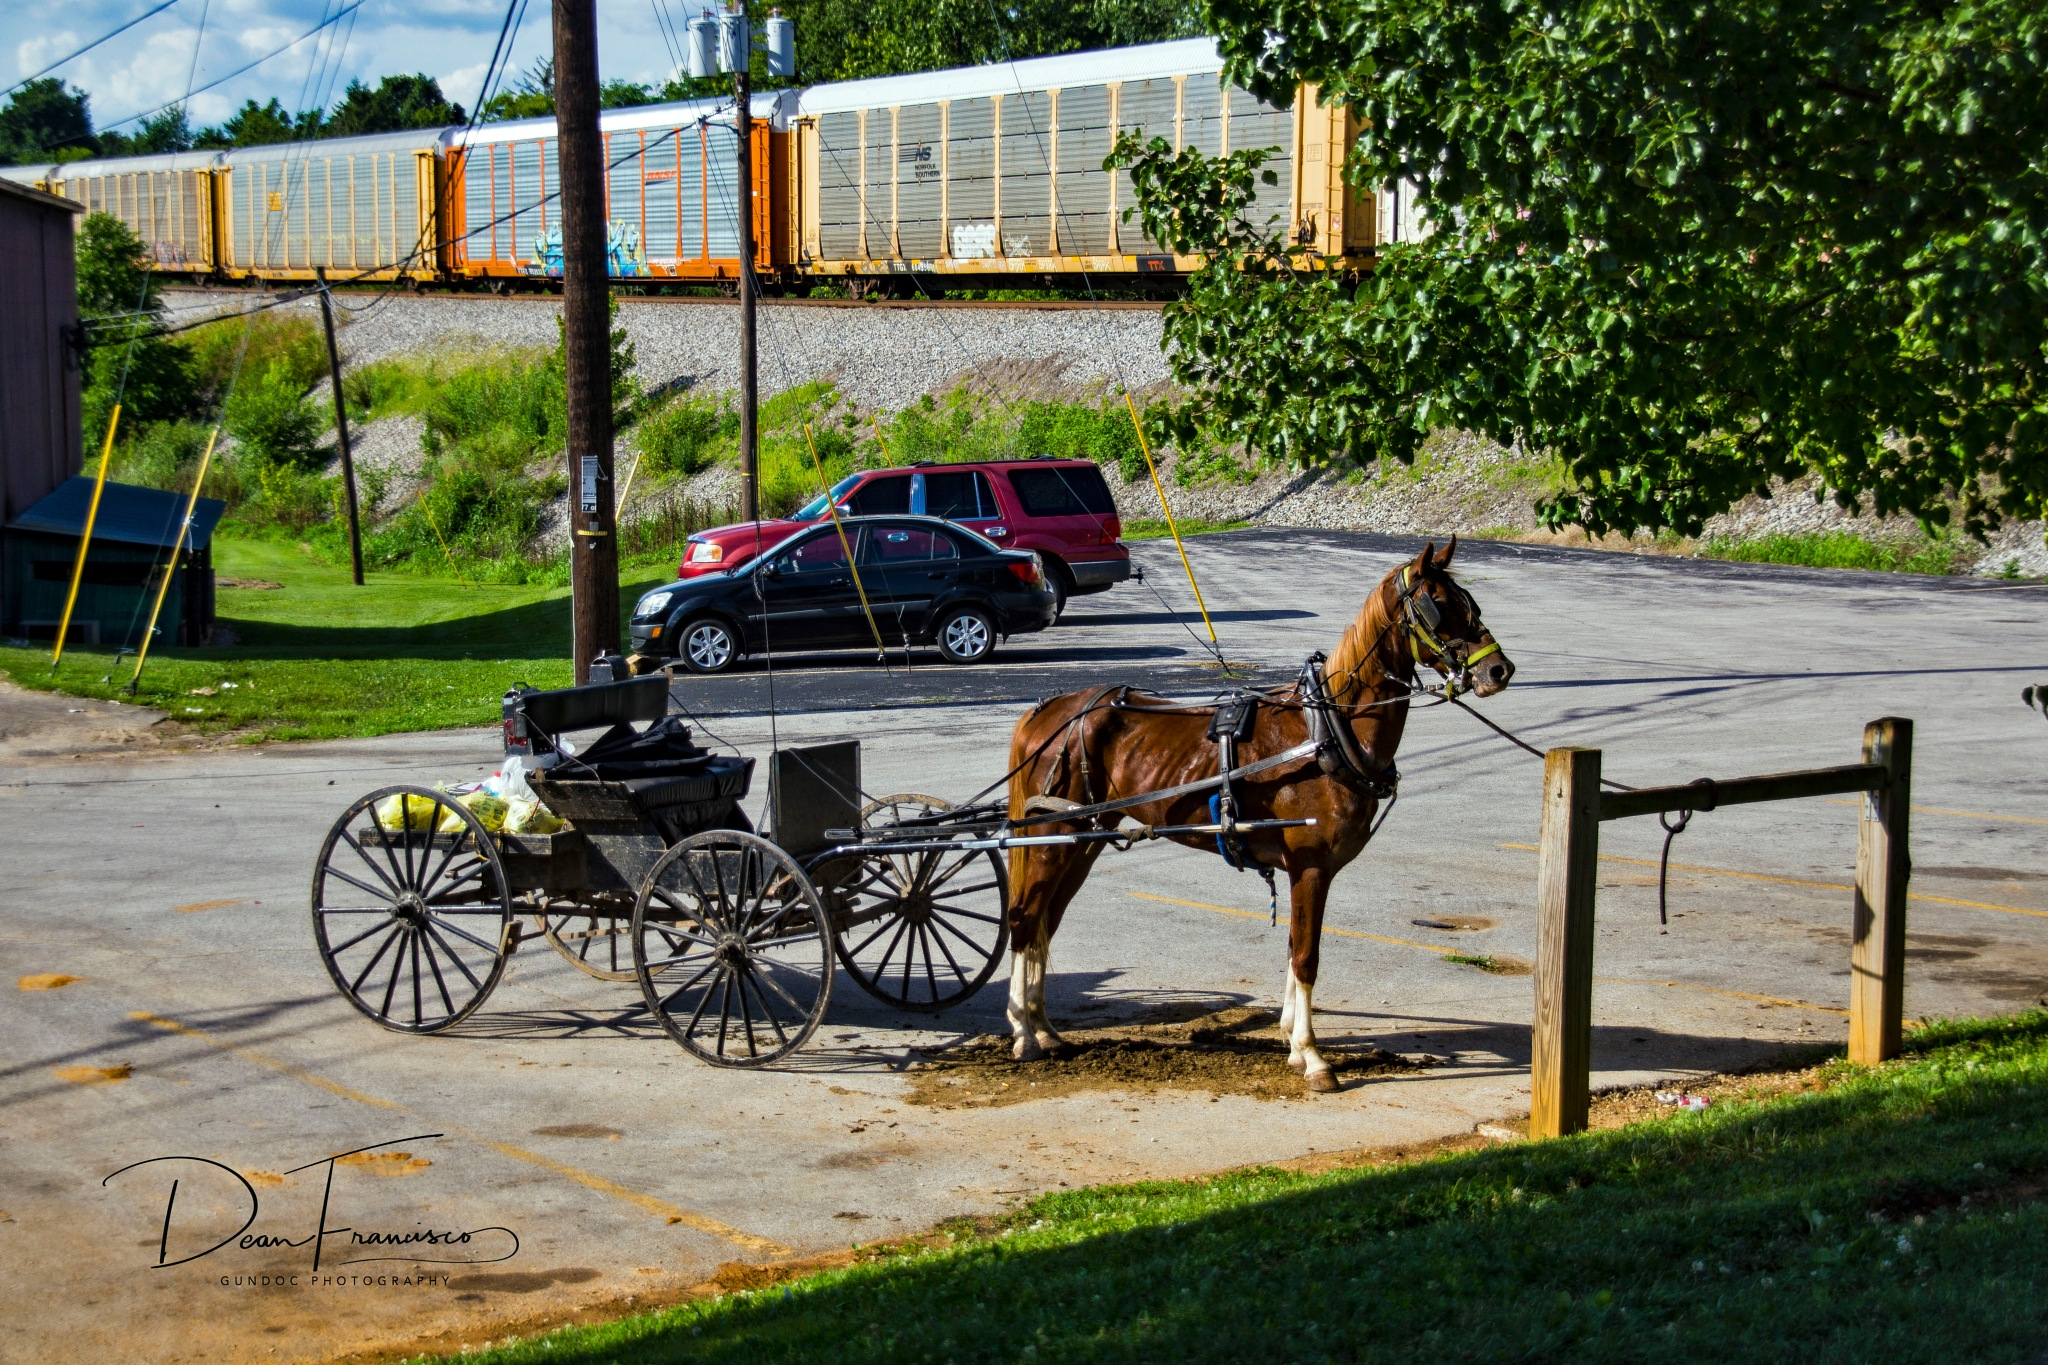 Amish Buggy sport Version by Dean Francisco